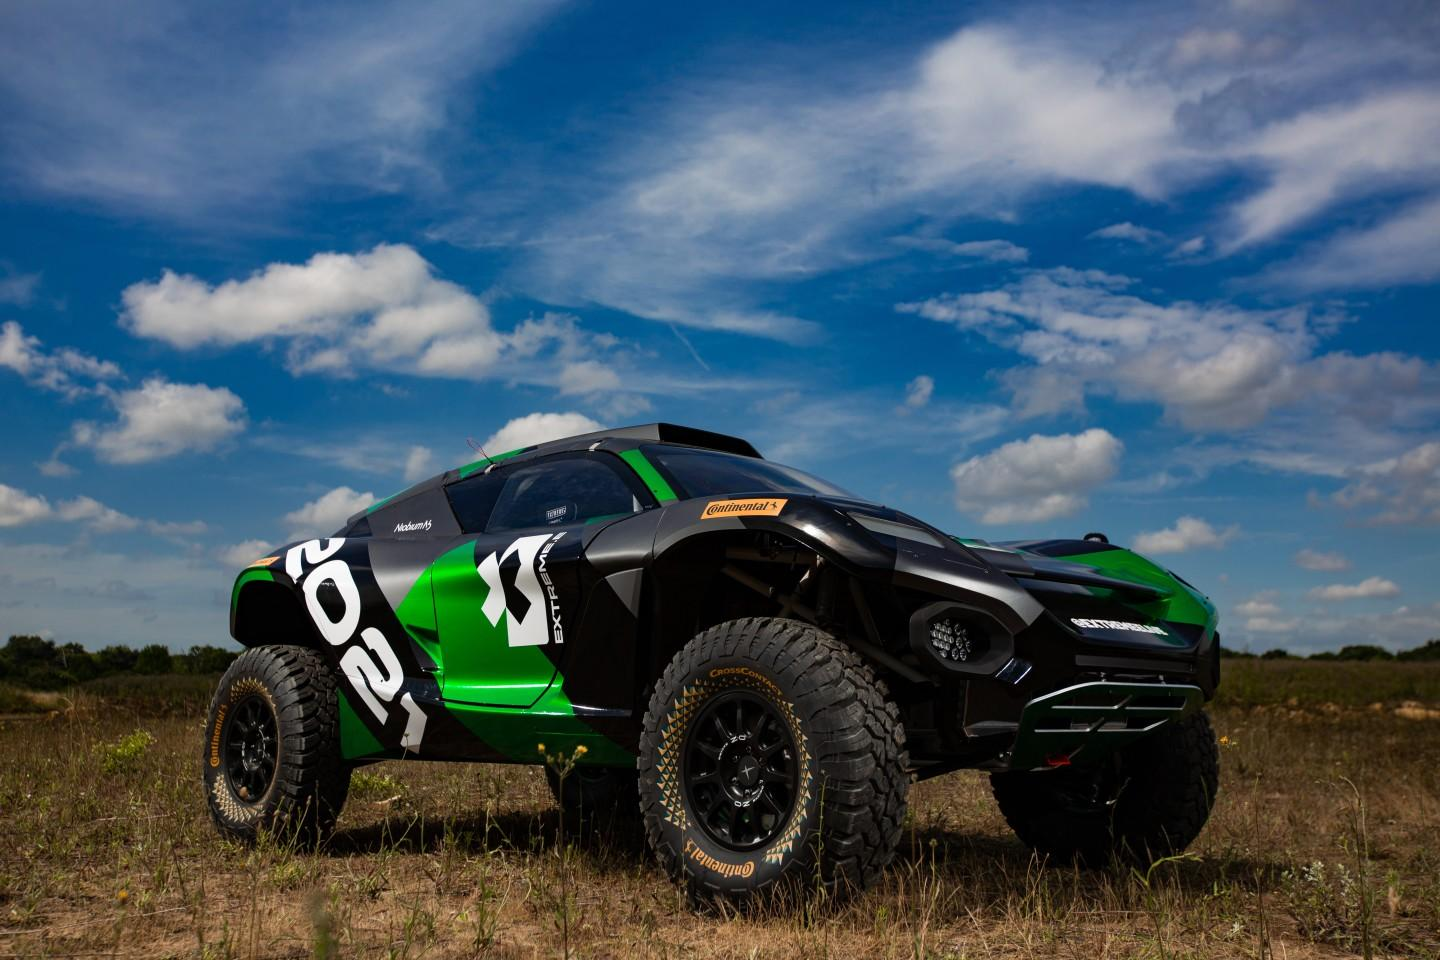 The official race car of Extreme E, the Odyssey 21 brings an electric drive with up to 550 hp (410 kW)